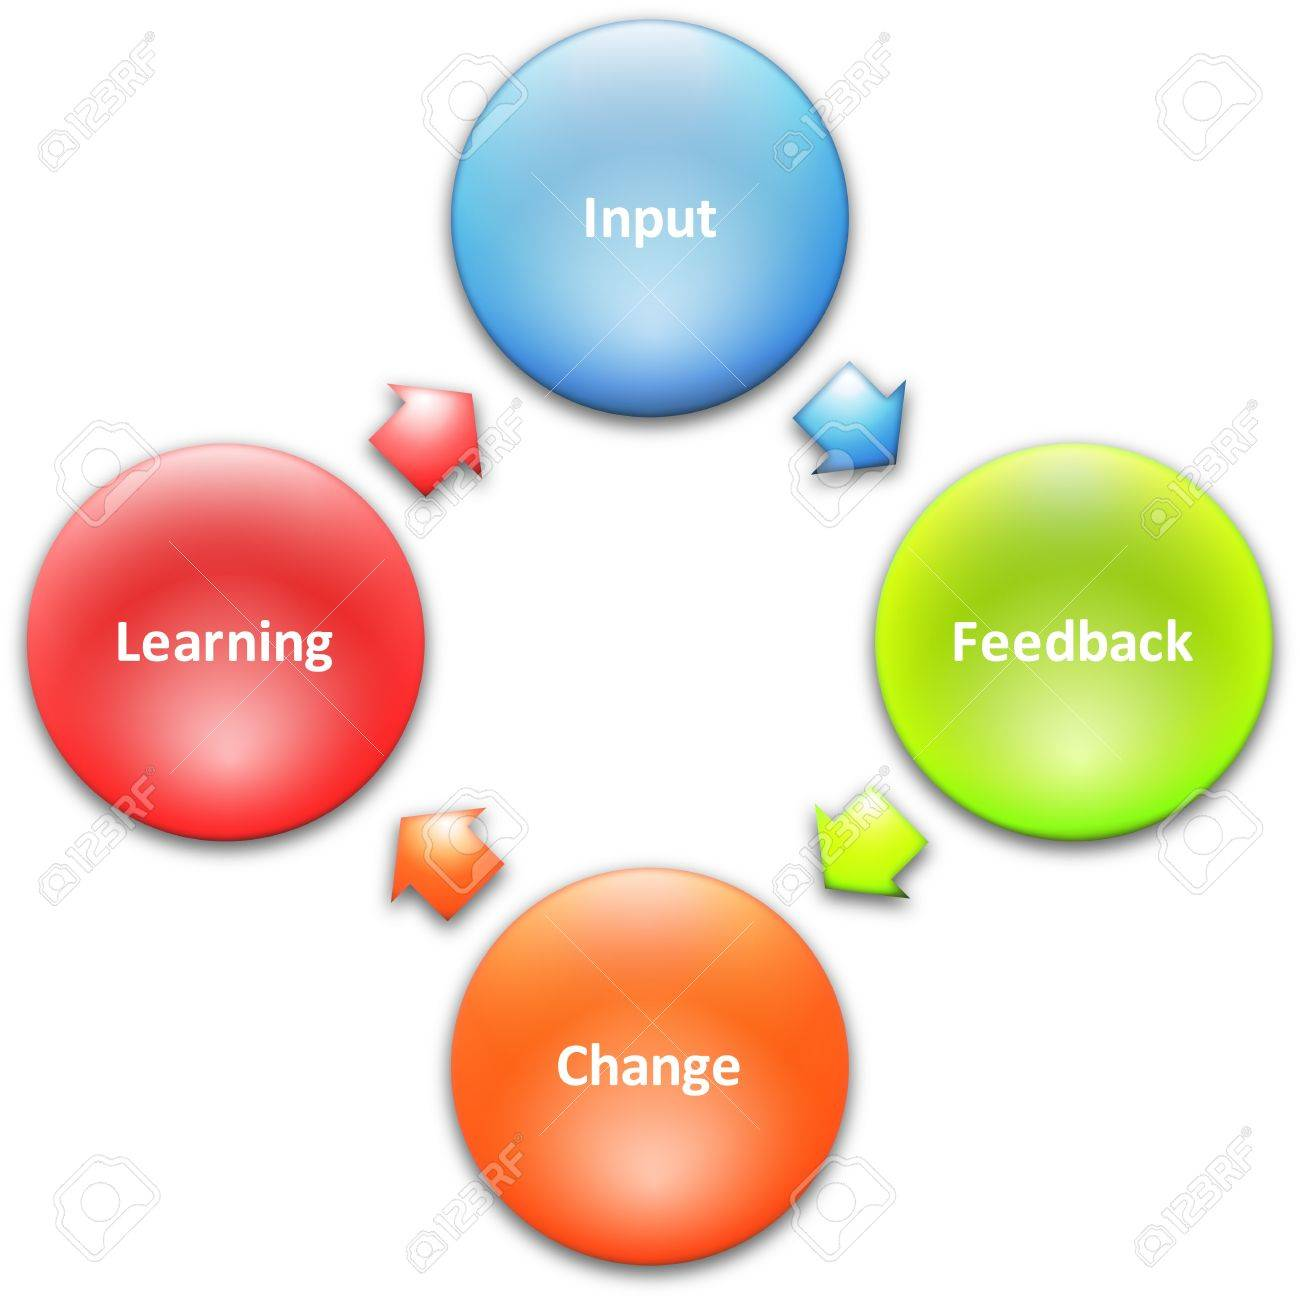 continuous improvement tool stock illustrations  cliparts and    continuous improvement tool  learning improvement cycle staff business strategy concept diagram stock photo